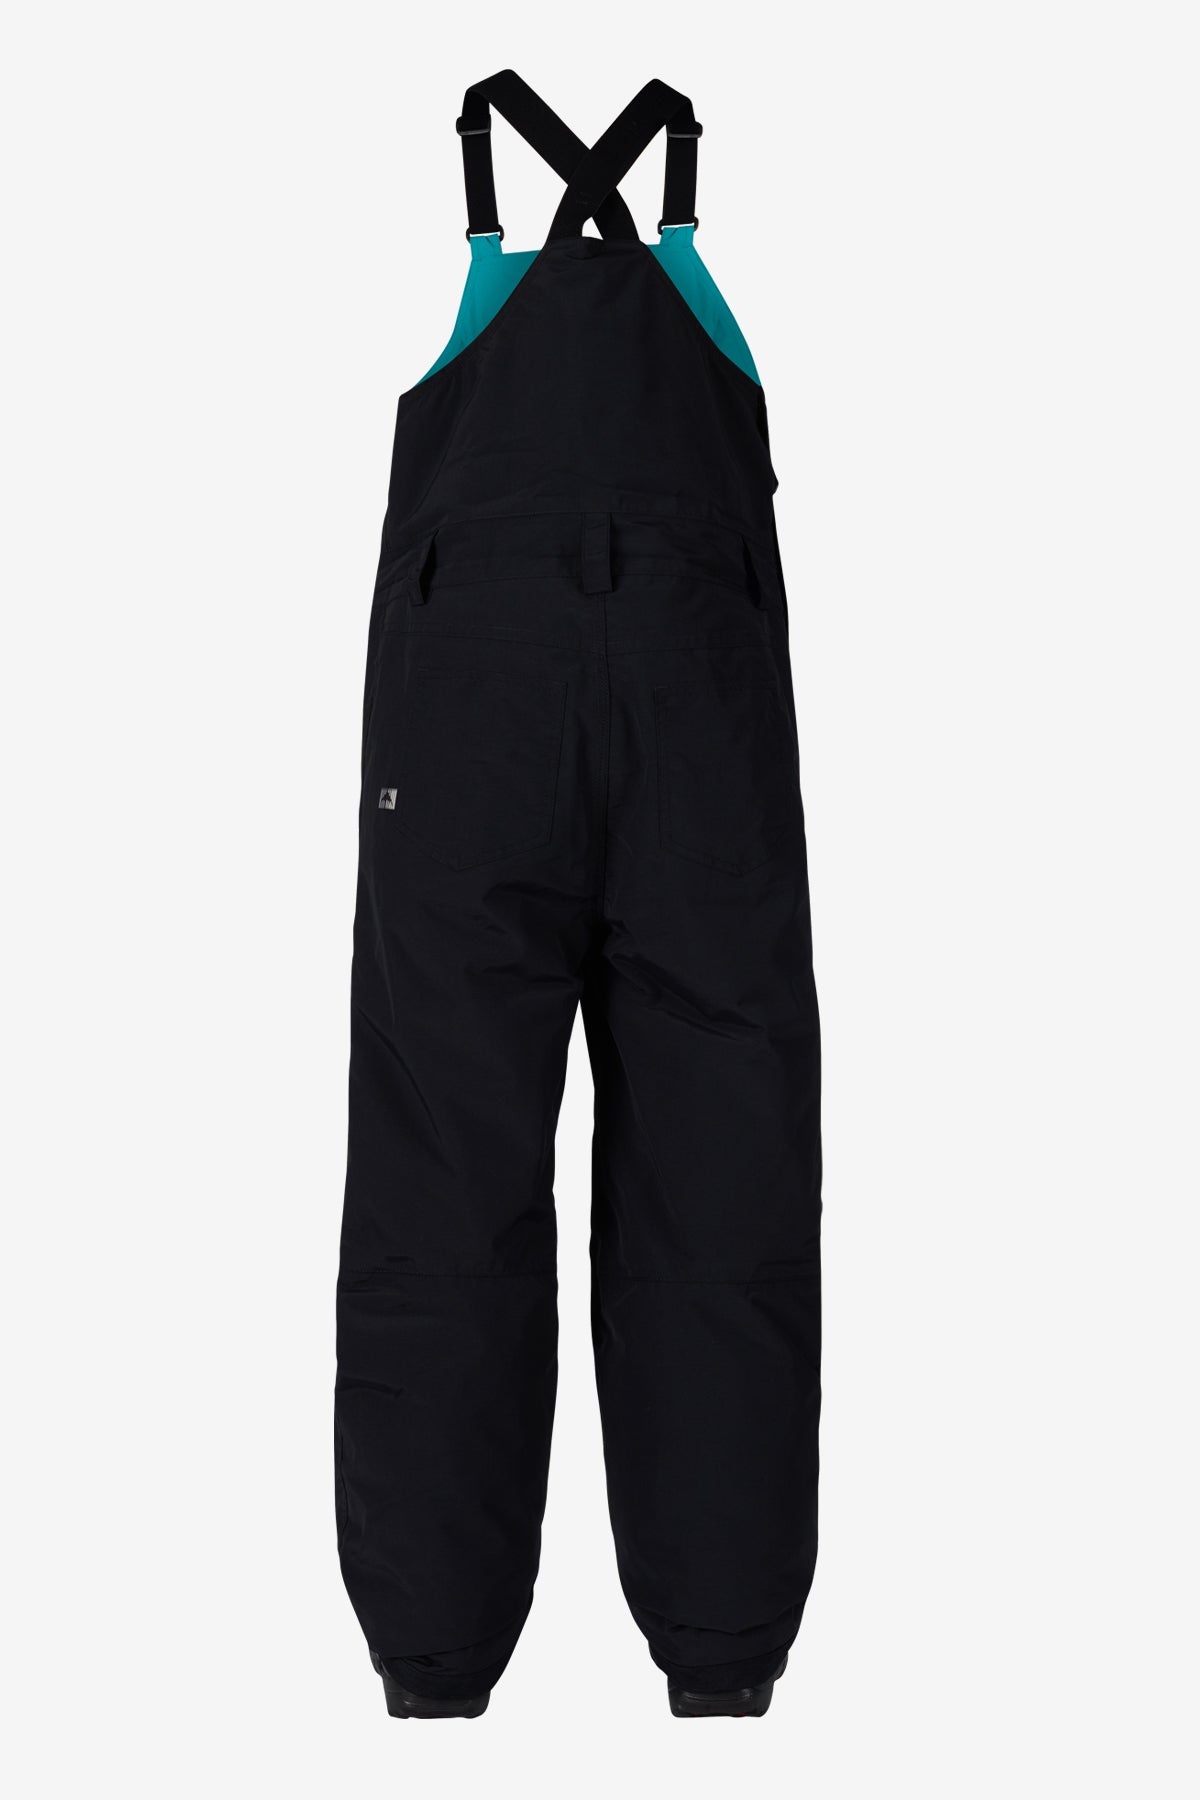 Burton Skylar Bib Kids Snowpants - Black